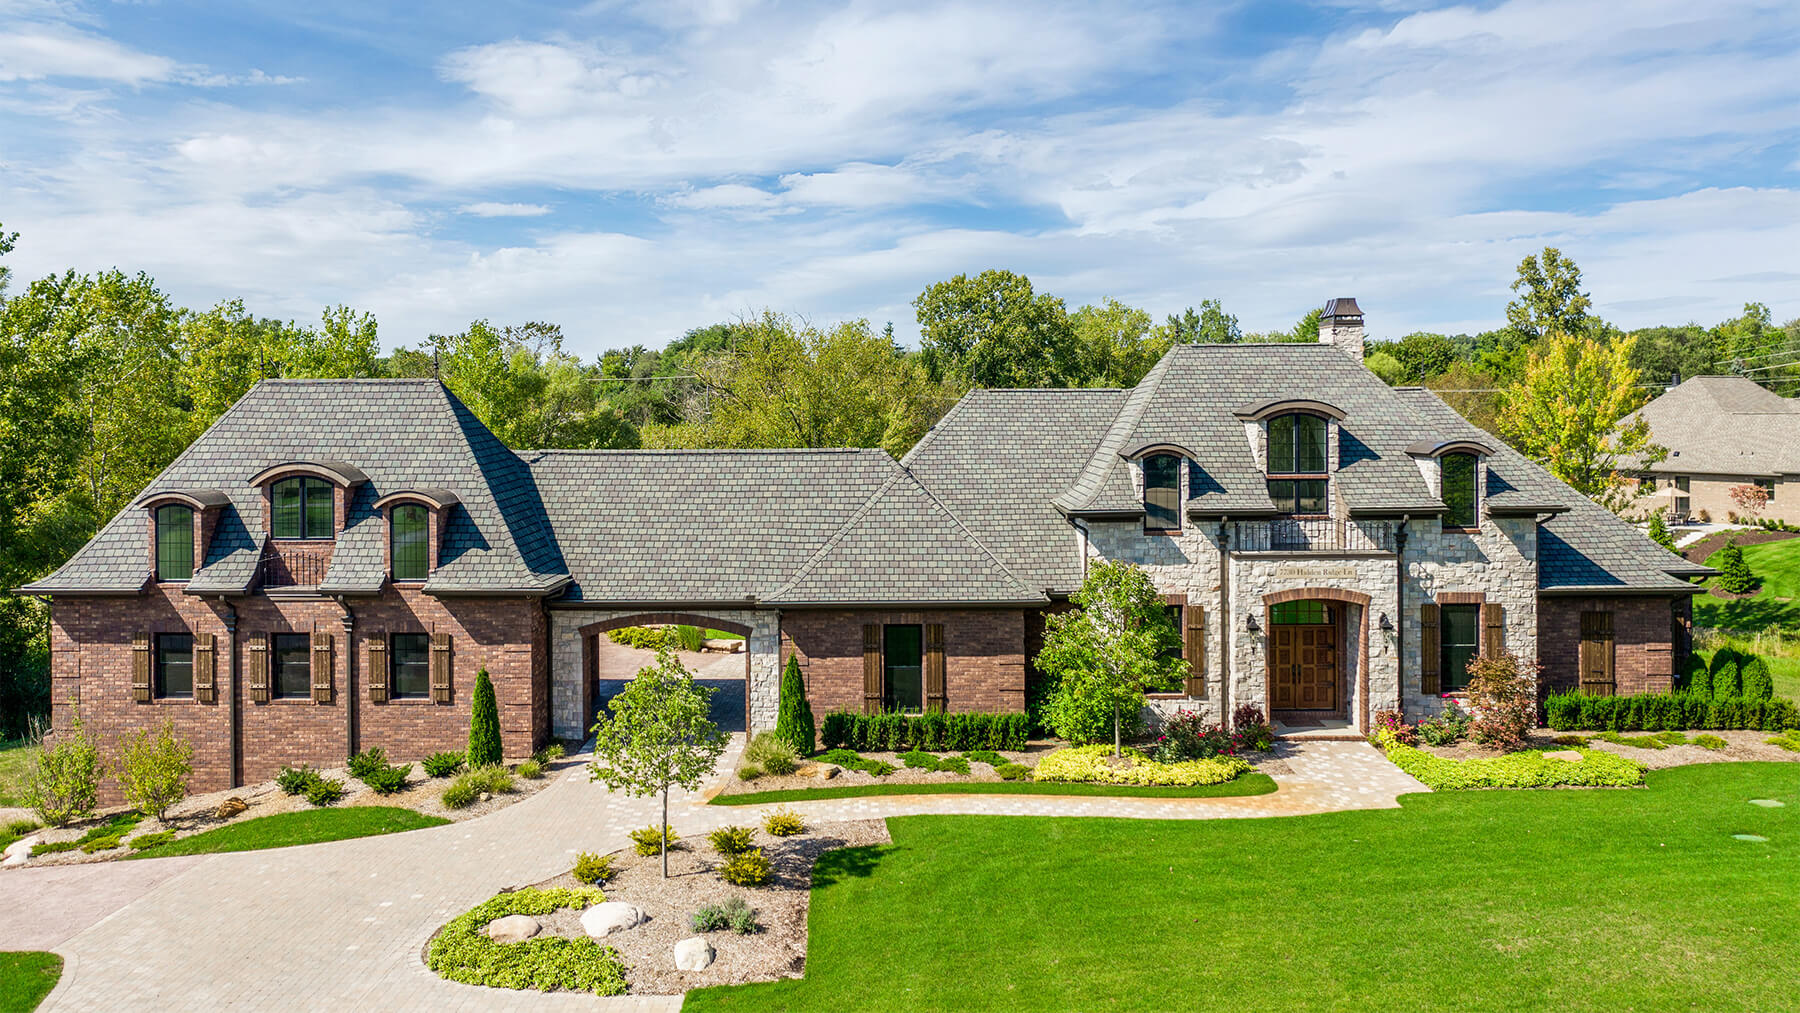 7730 Hidden Ridge - Salem Twp, Michigan - $1,750,000 USD